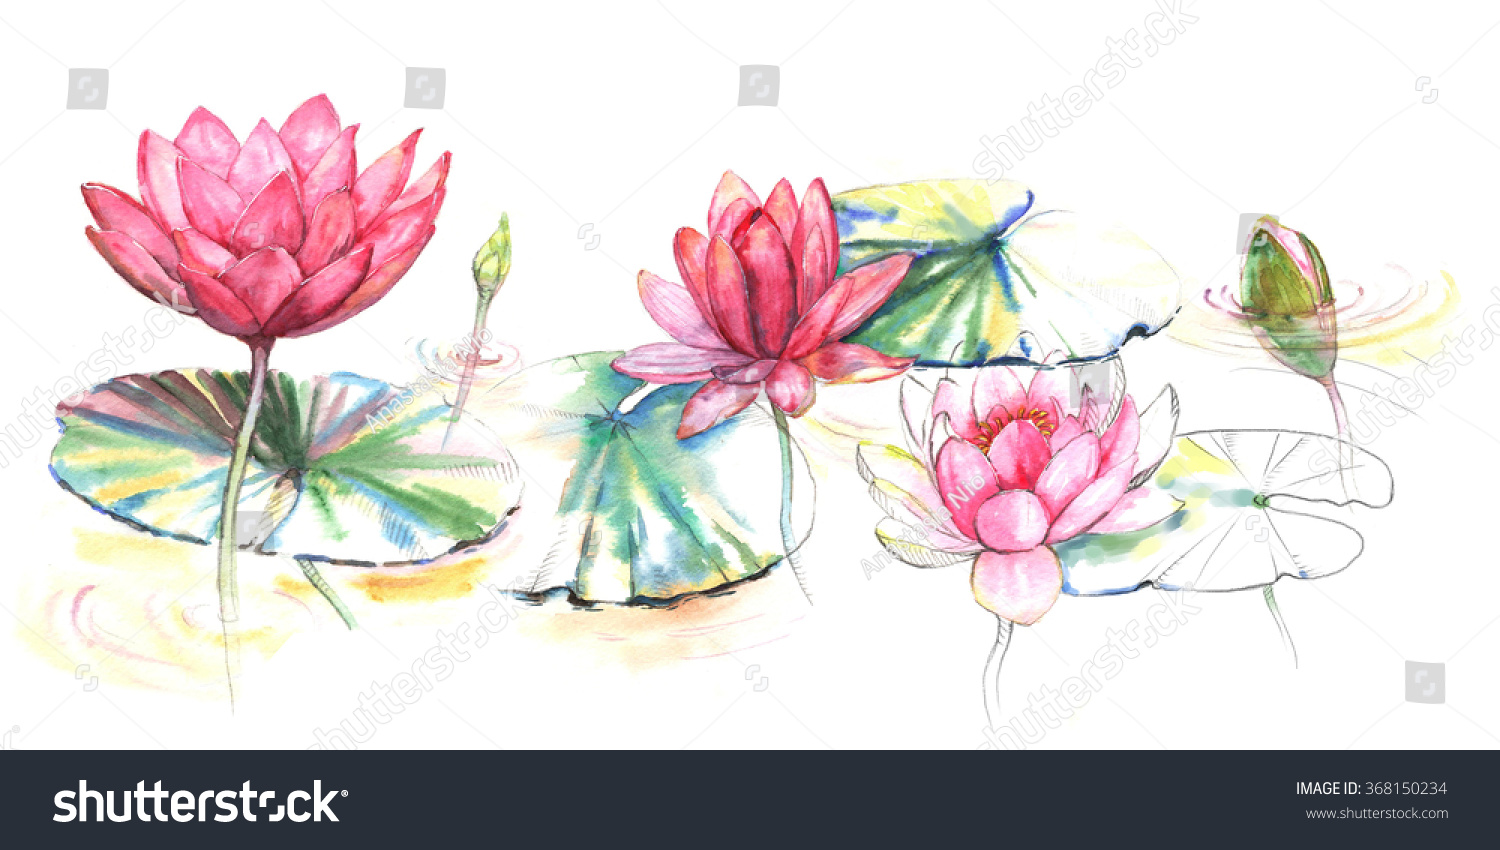 Handdrawn Watercolor Illustration Pink Lotus Flowers Stock